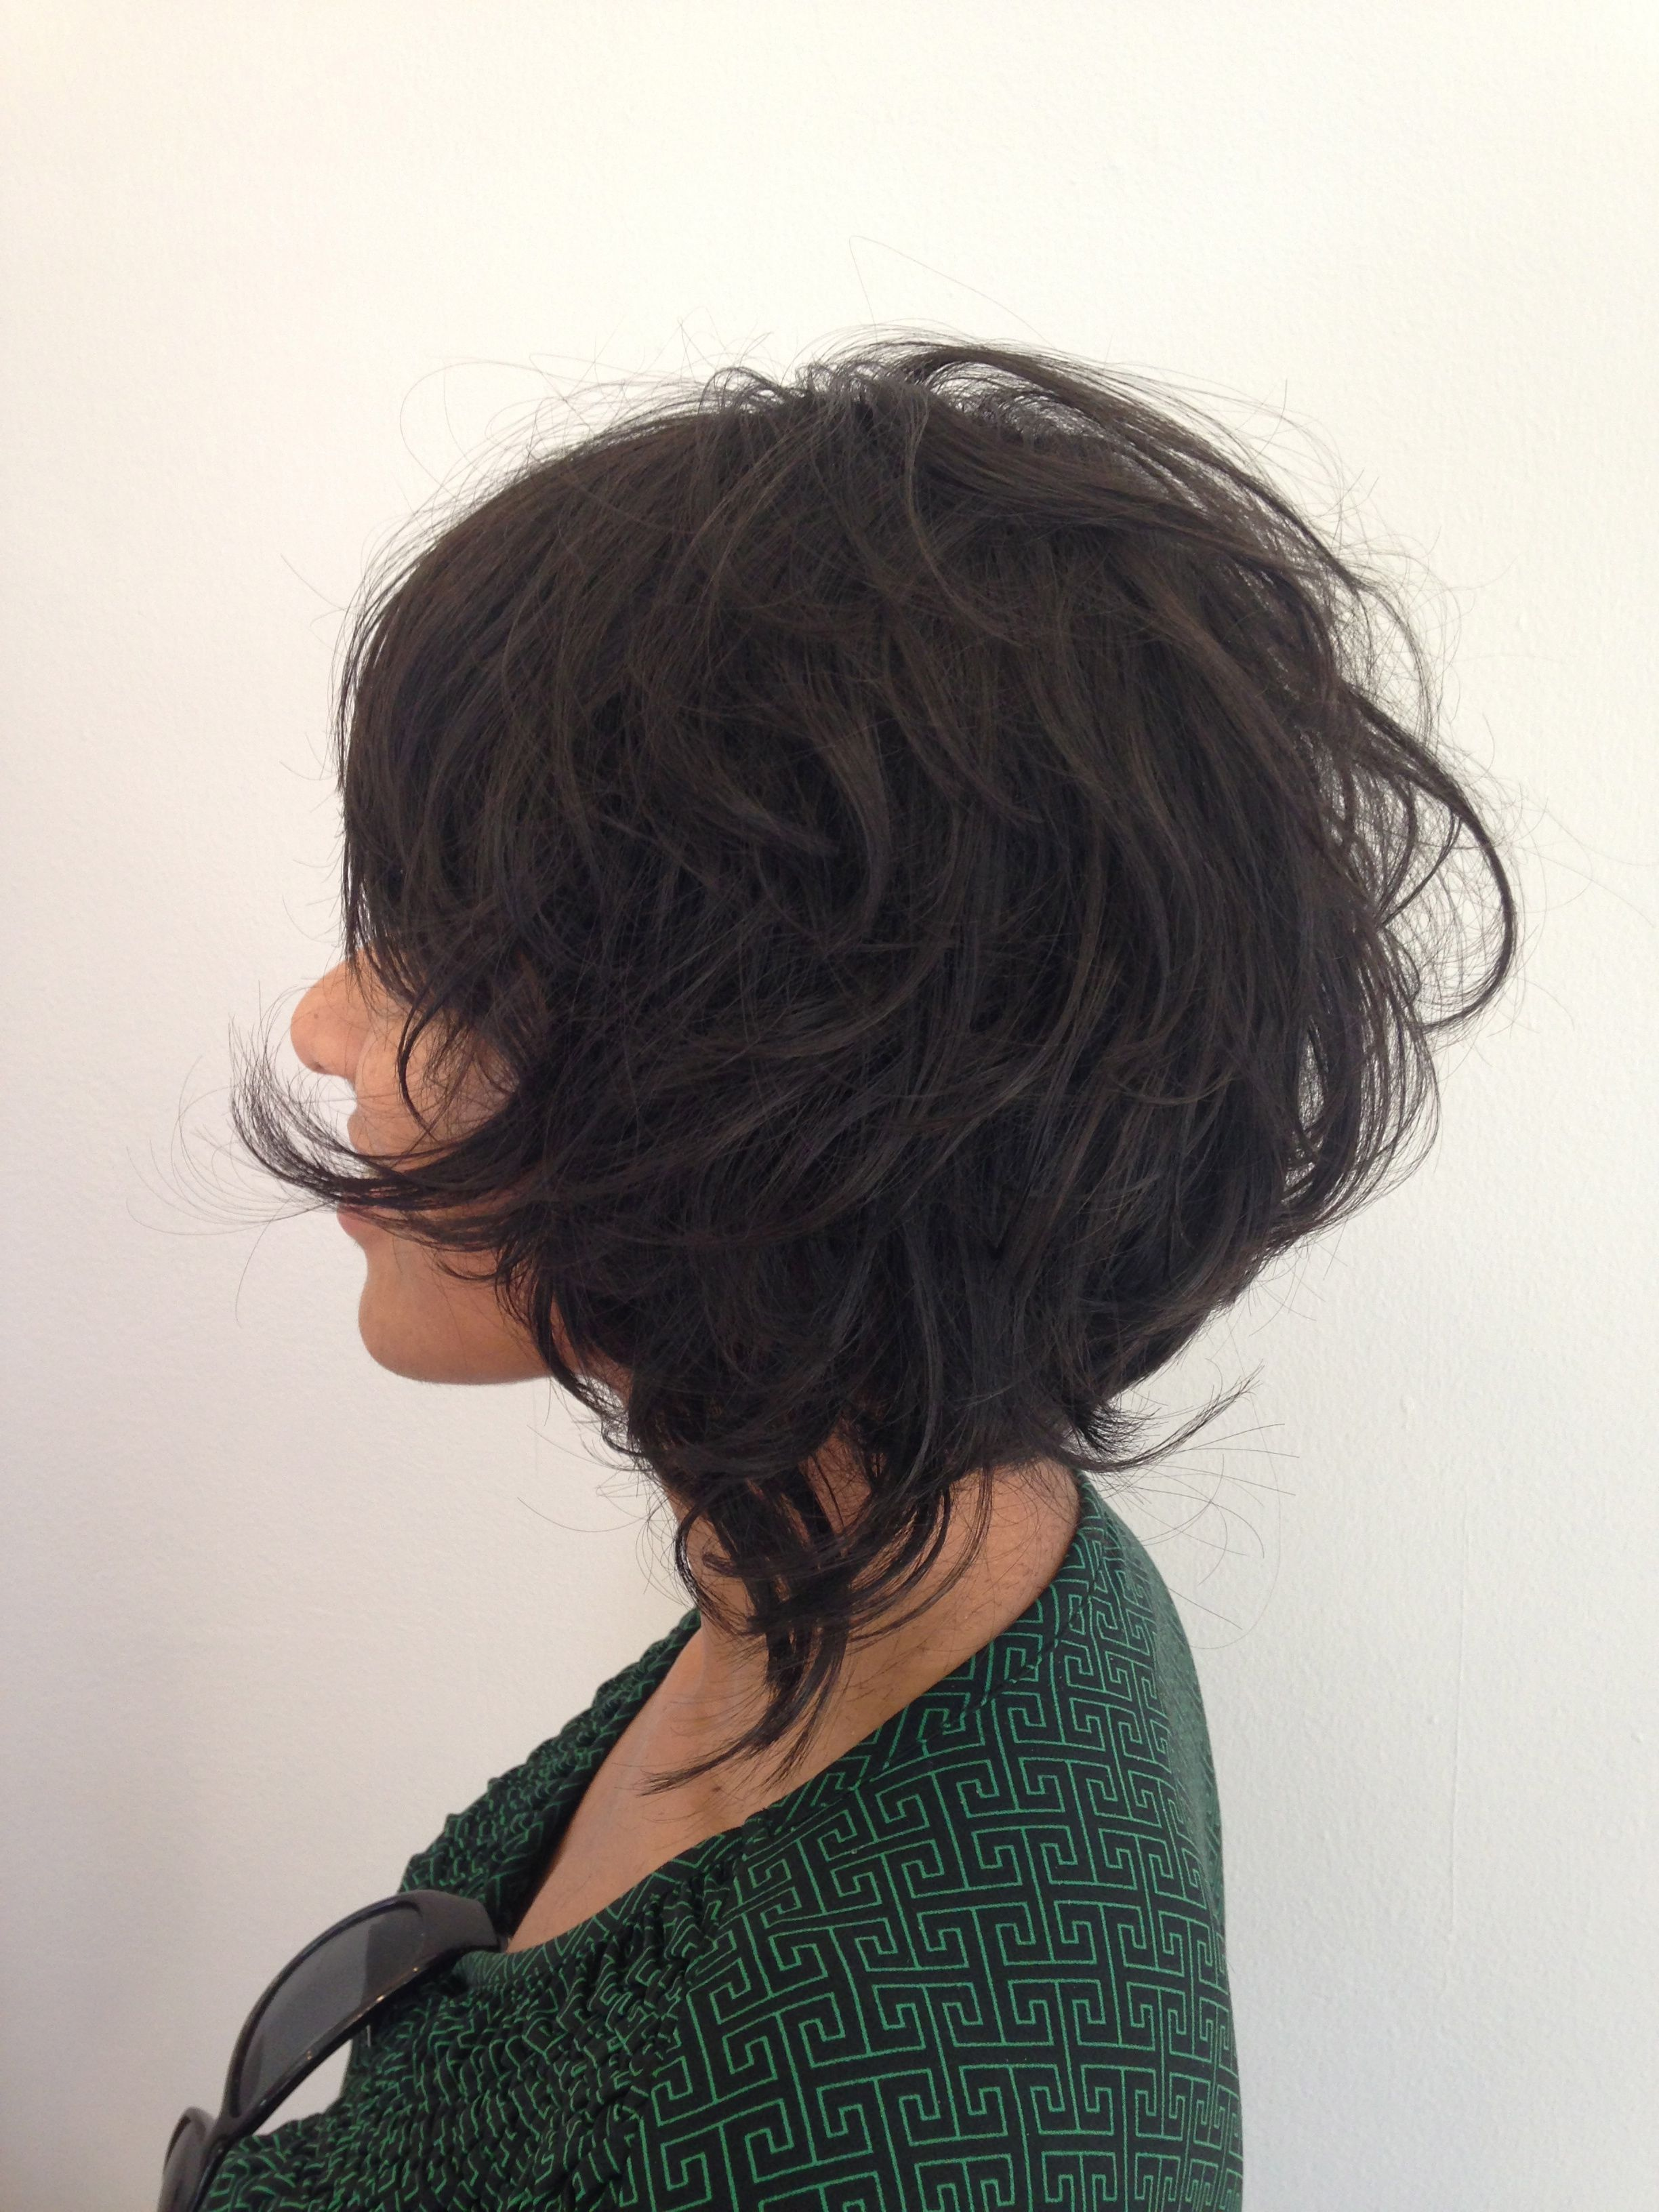 Messy Fun Bob Haircut With Lots Of Layers Use R Co Control Creme Pomade For Better Hair Style Definition Hair Styles Short Summer Hair Short Hair With Layers